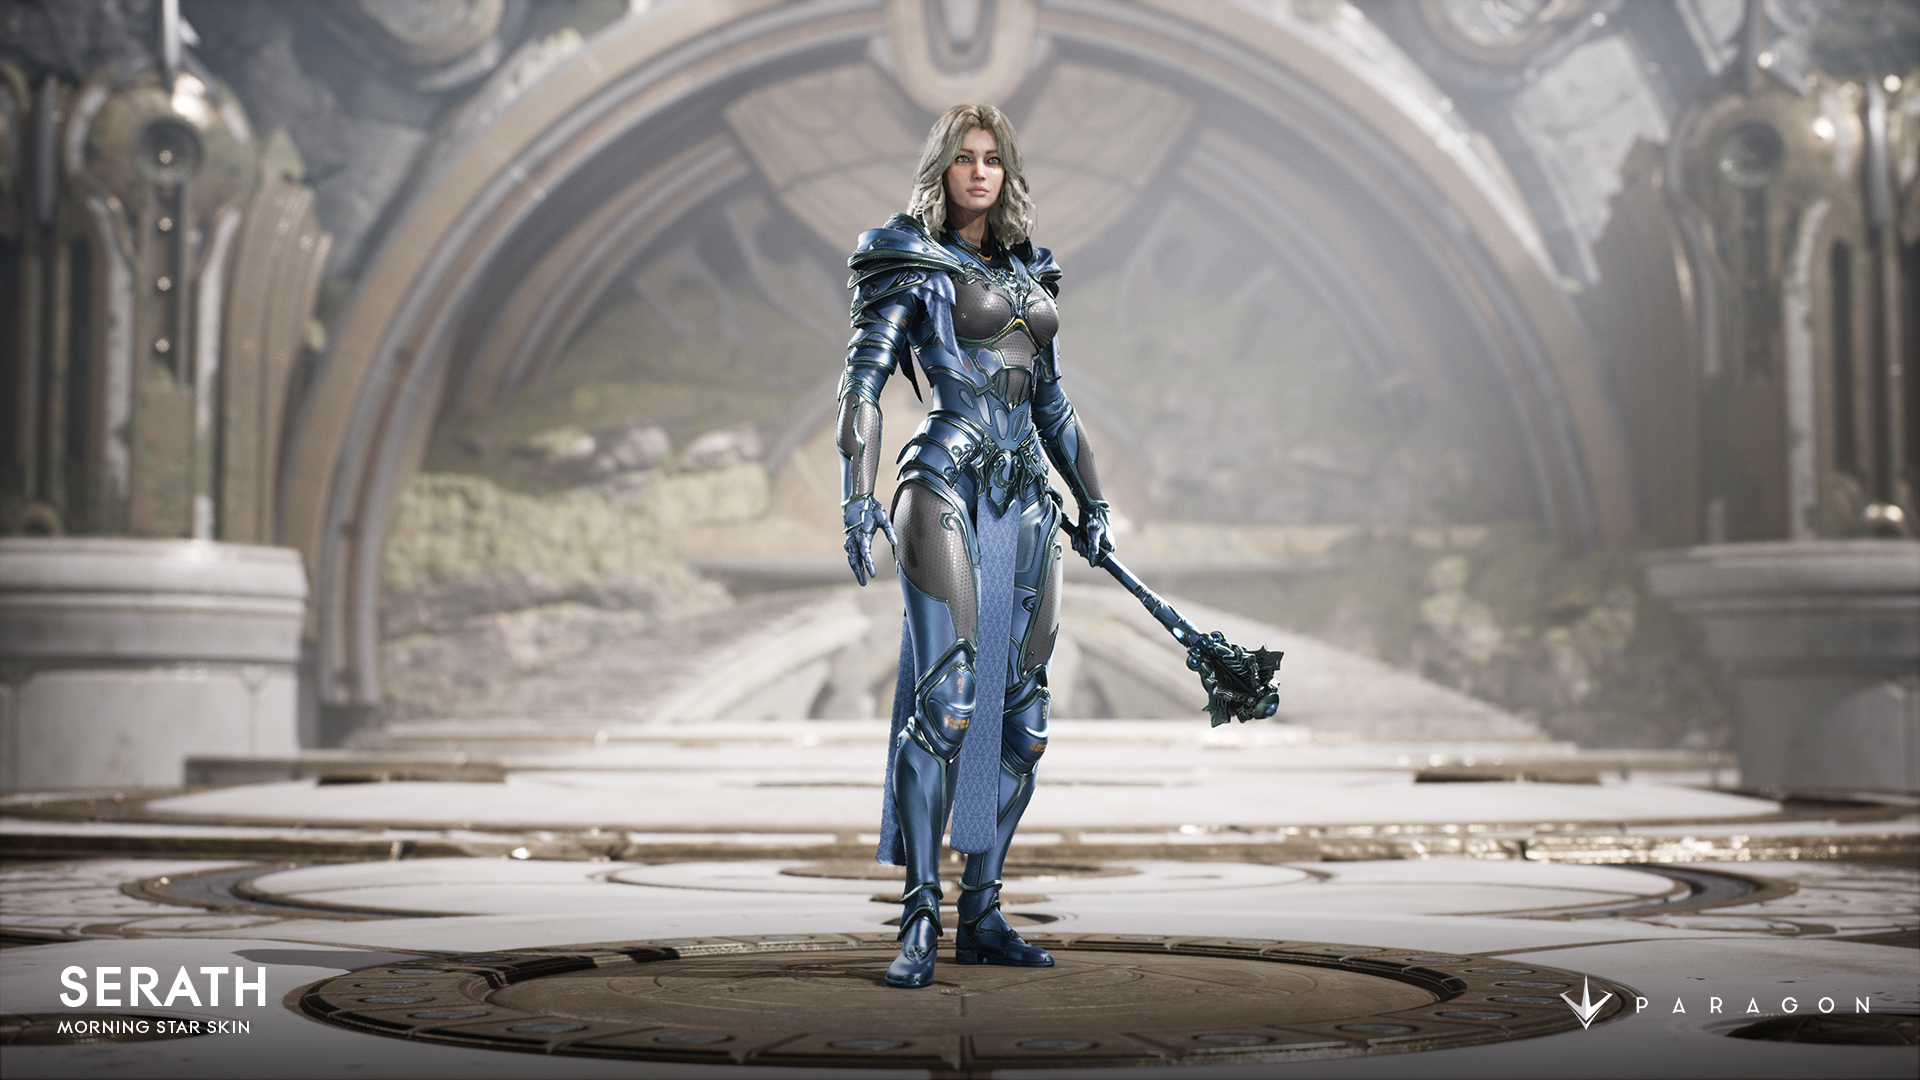 Paragon%2Fblog%2Fv-36-1-release-notes%2FMorningStarSerath_Screeshot-1920x1080-6472a58f53b0484f6b66994e93dc3505dd37902a